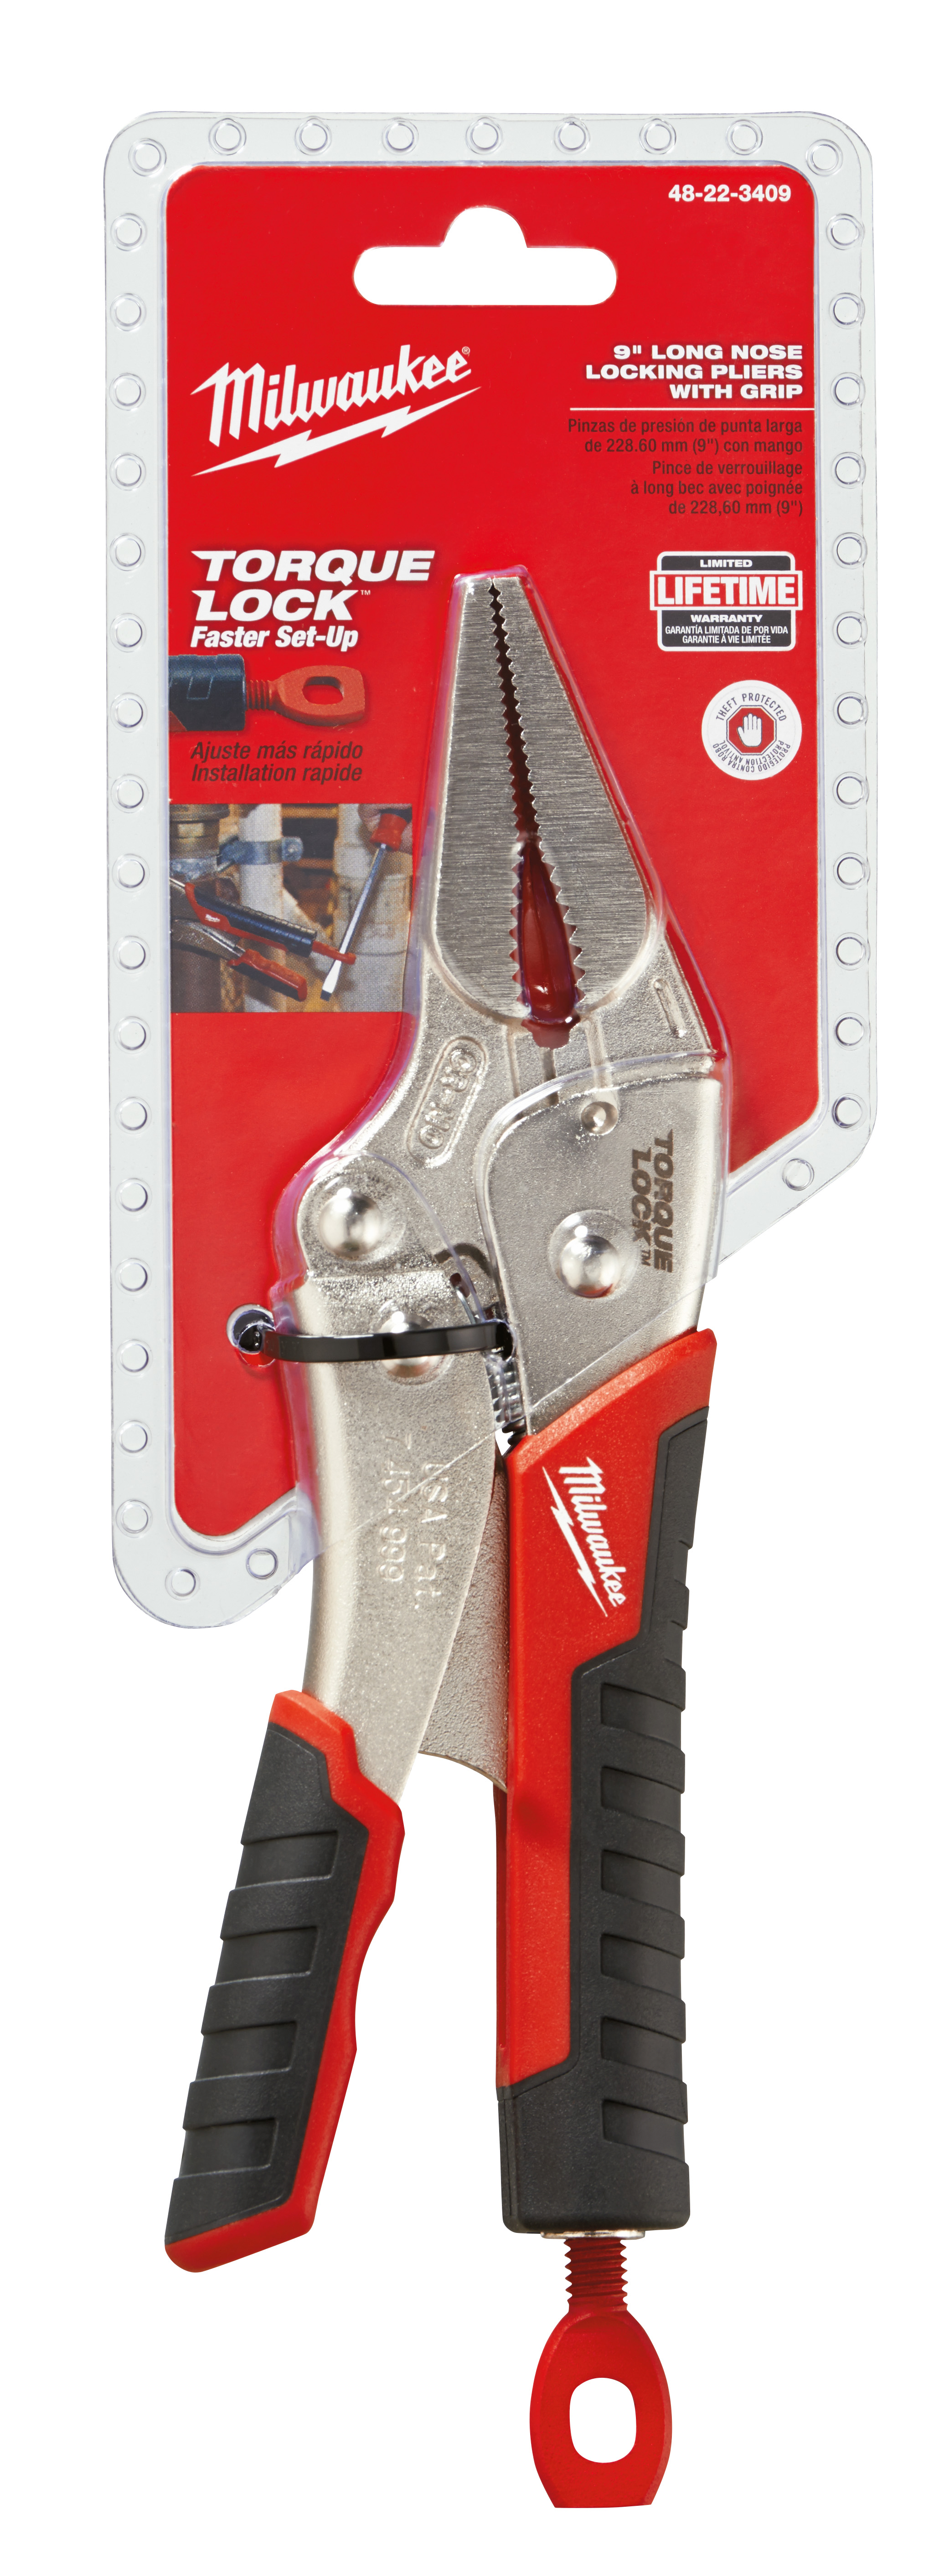 """Milwaukee 48-22-3409 9"""" Torque Lock Long Nose Locking Pliers with Durable Grip"""